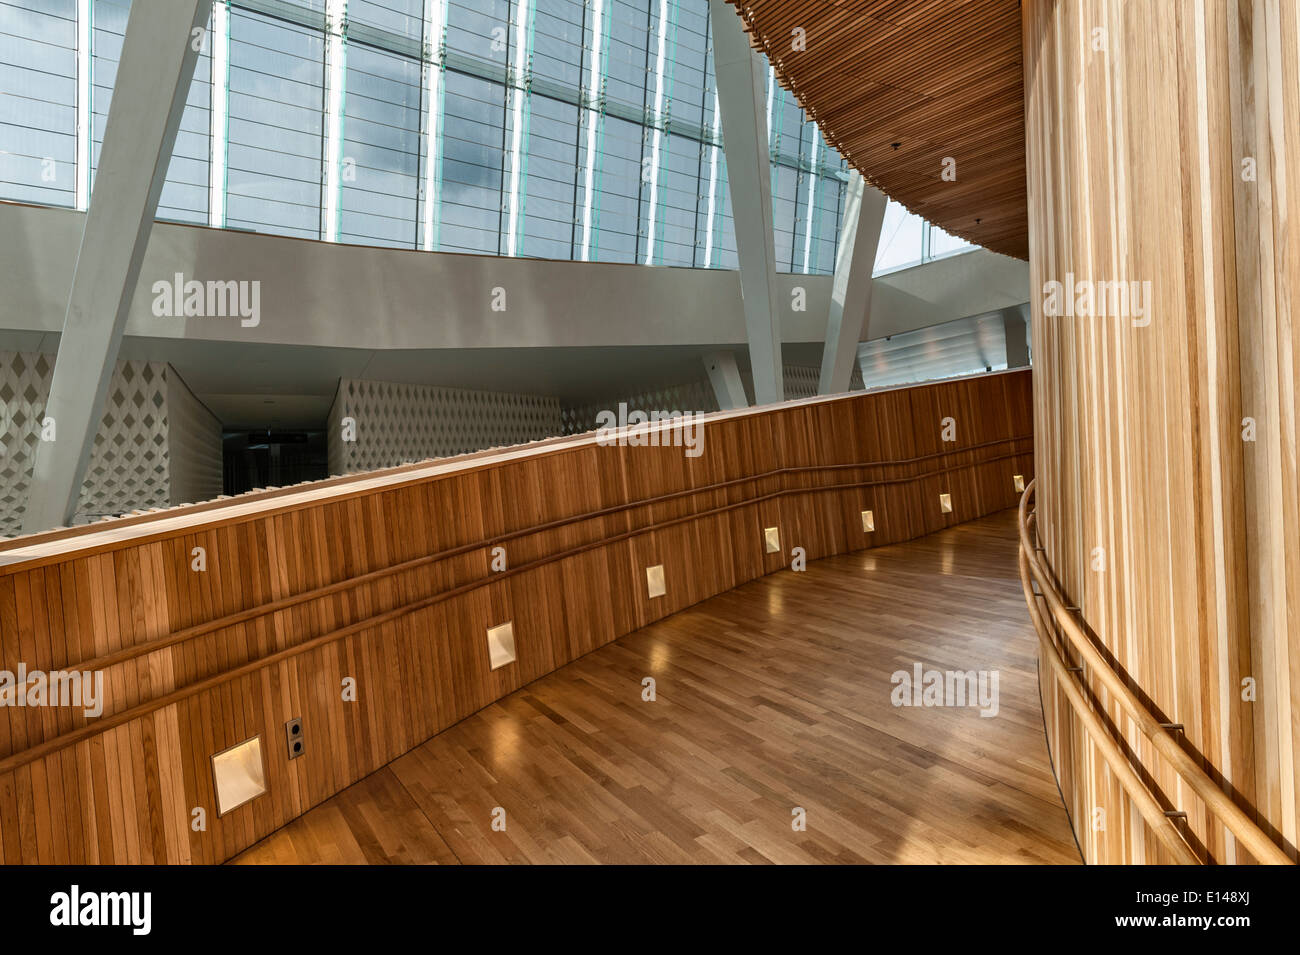 Interior of the Opera House (Operahuset) in Oslo, Norway, designed in 2003 by the Norwegian firm Snøhetta - Stock Image